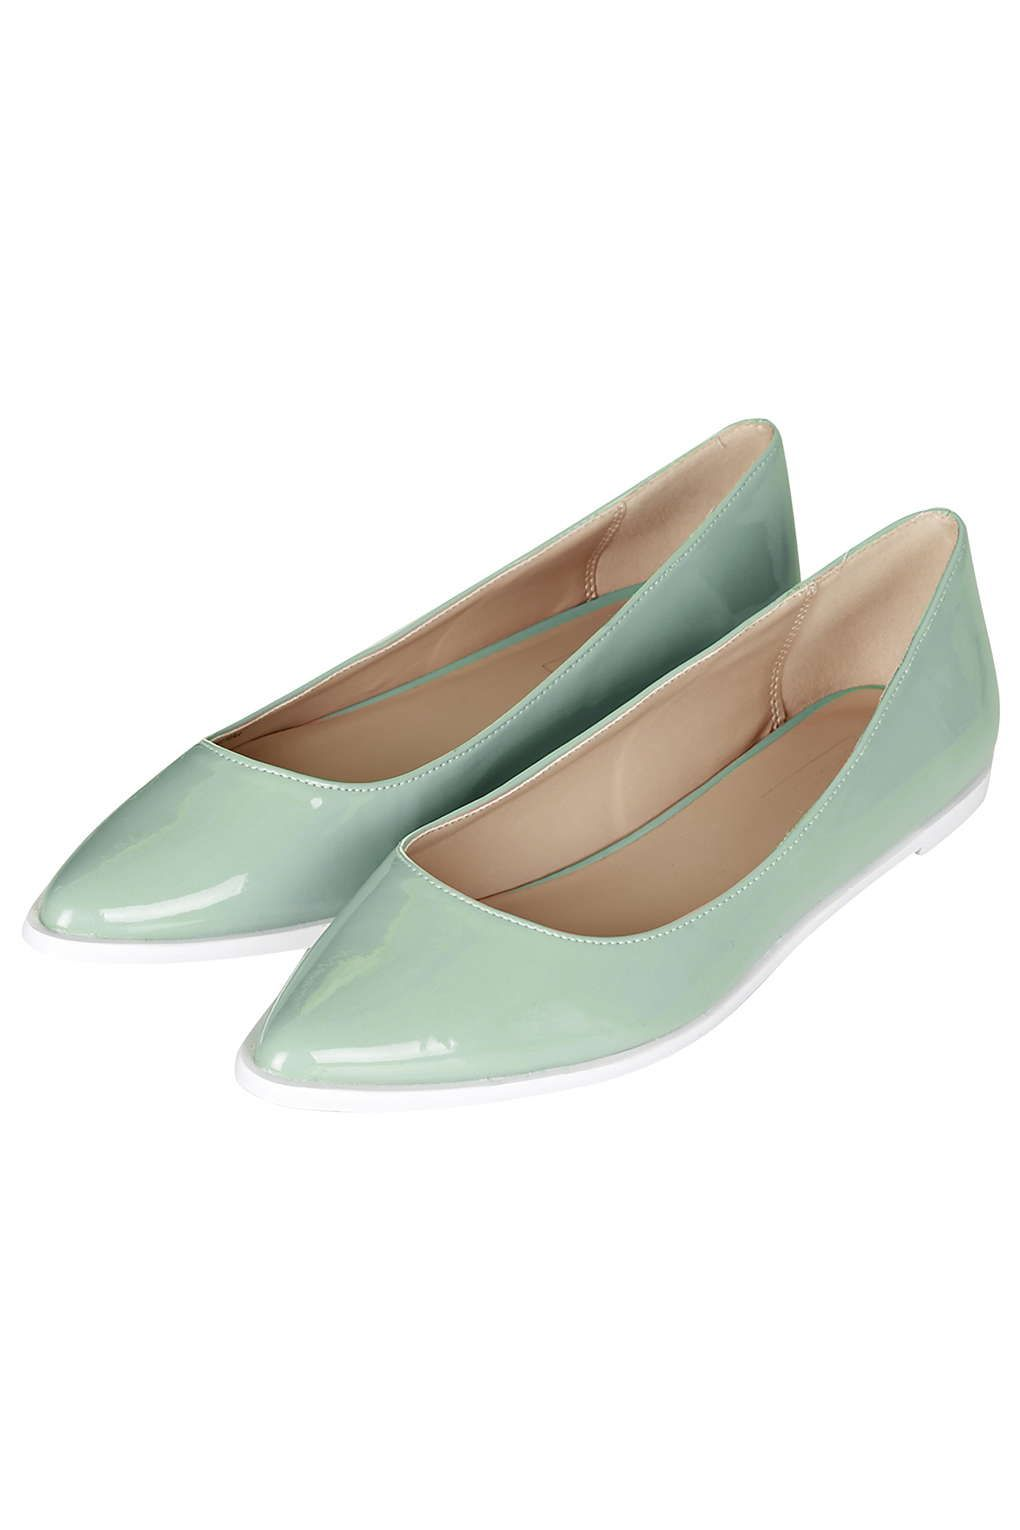 SANTIAGO Ballet Pumps - Flats - Shoes - Topshop Europe